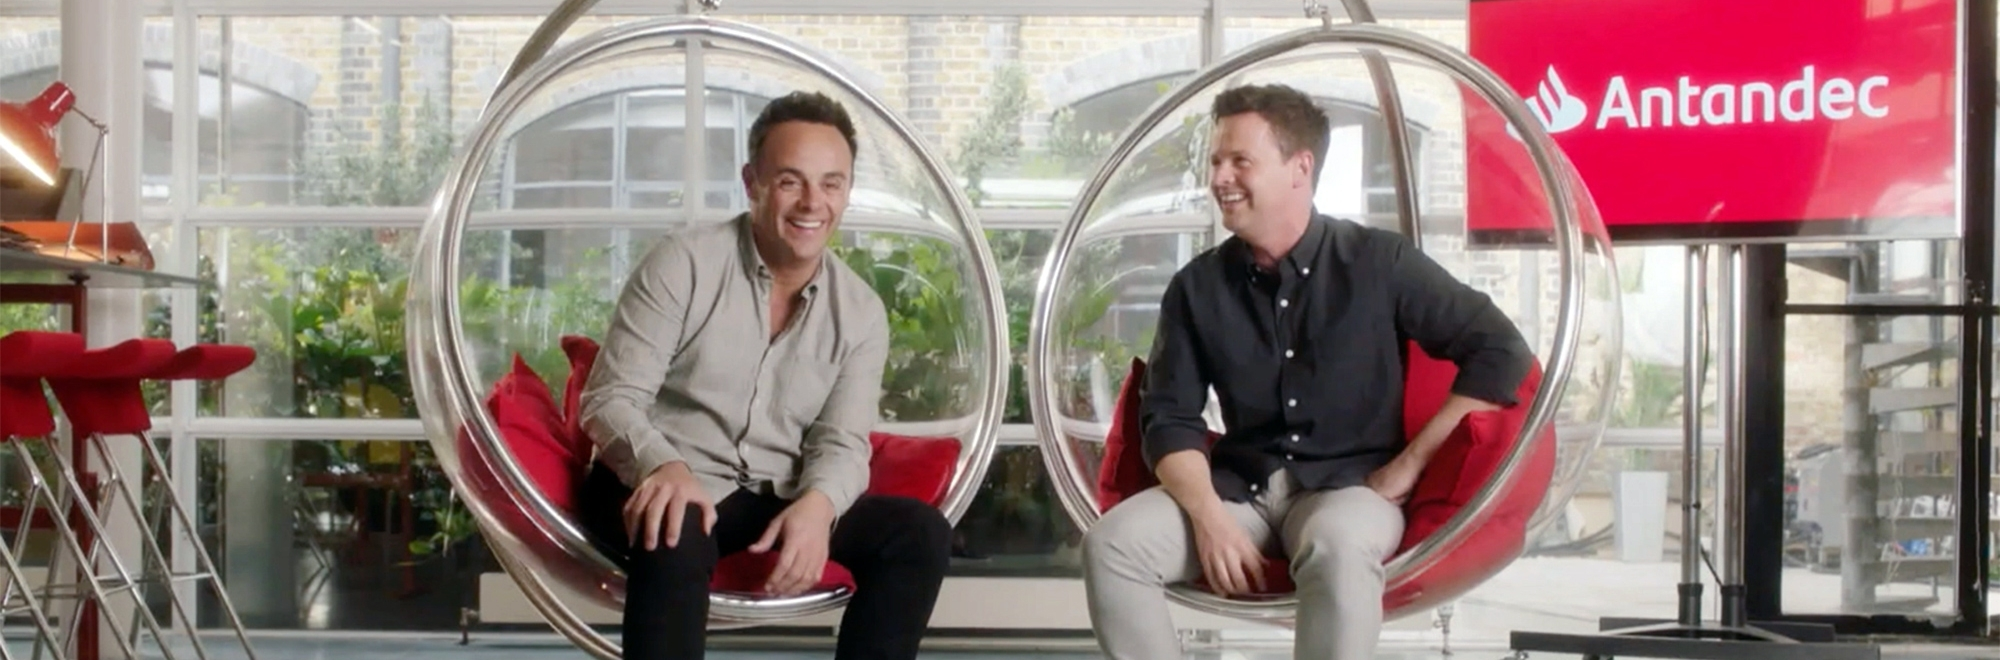 Why Santander's spoof ad starring Ant and Dec was 'impeccable'